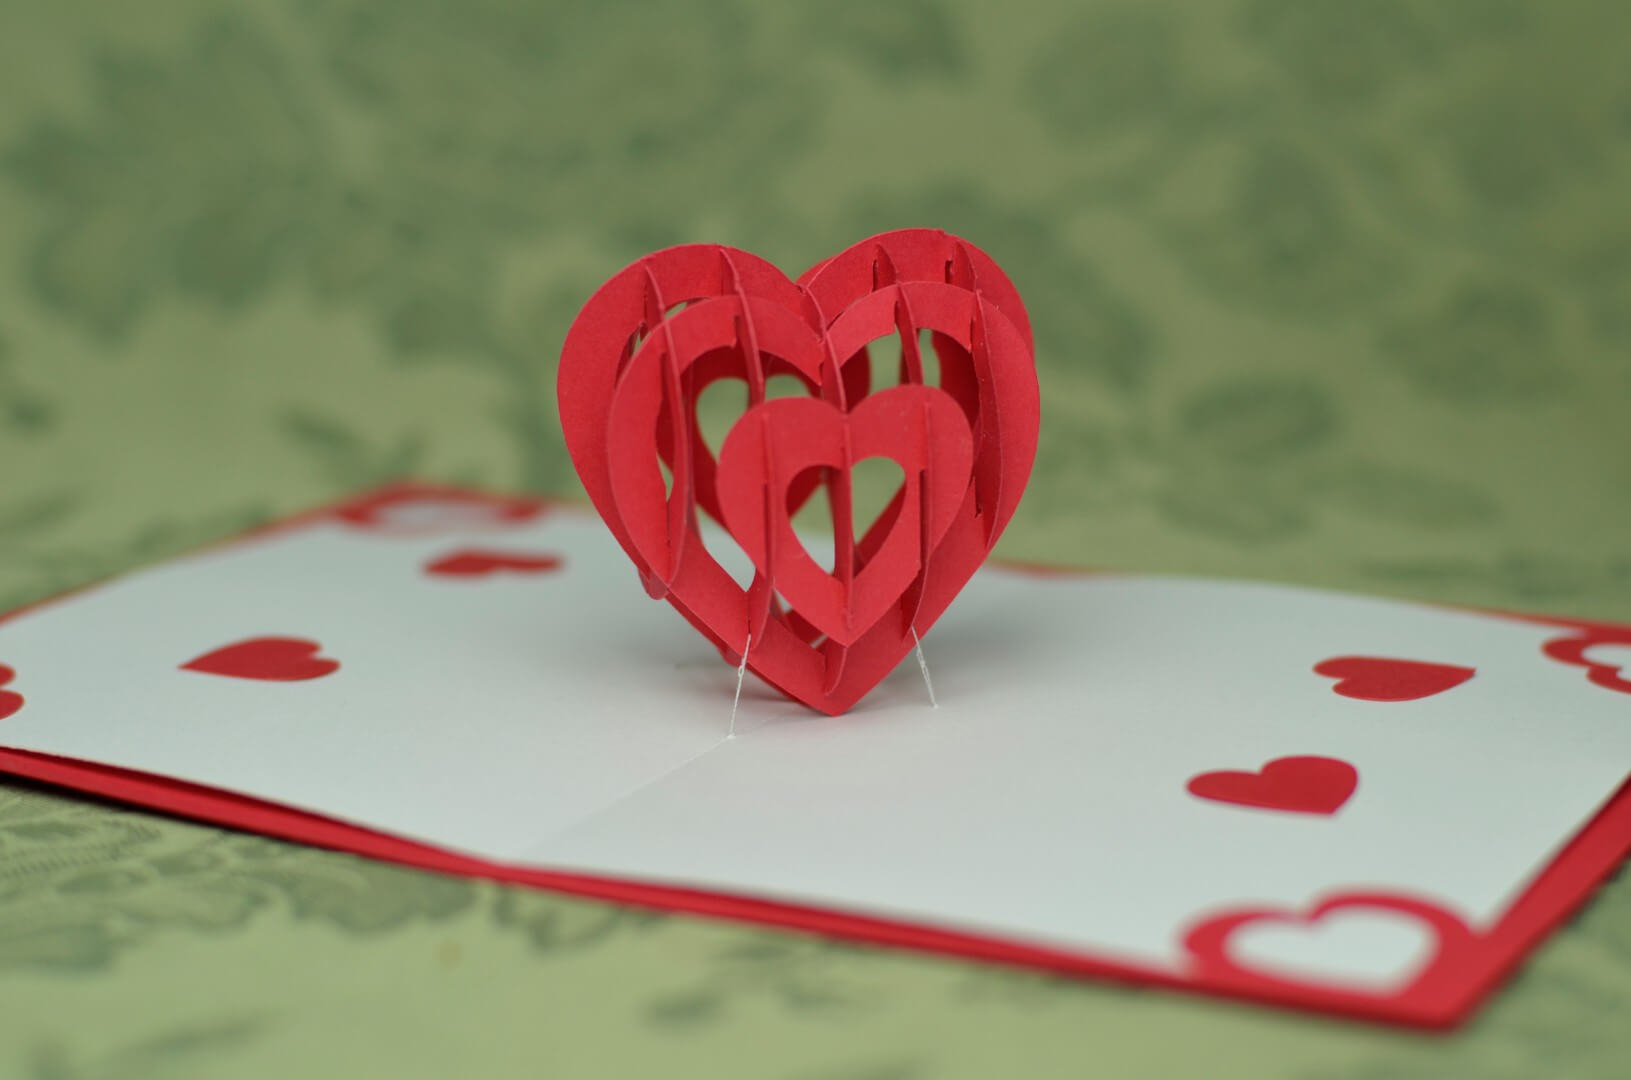 3D Heart Pop Up Card Template Regarding 3D Heart Pop Up Card Template Pdf